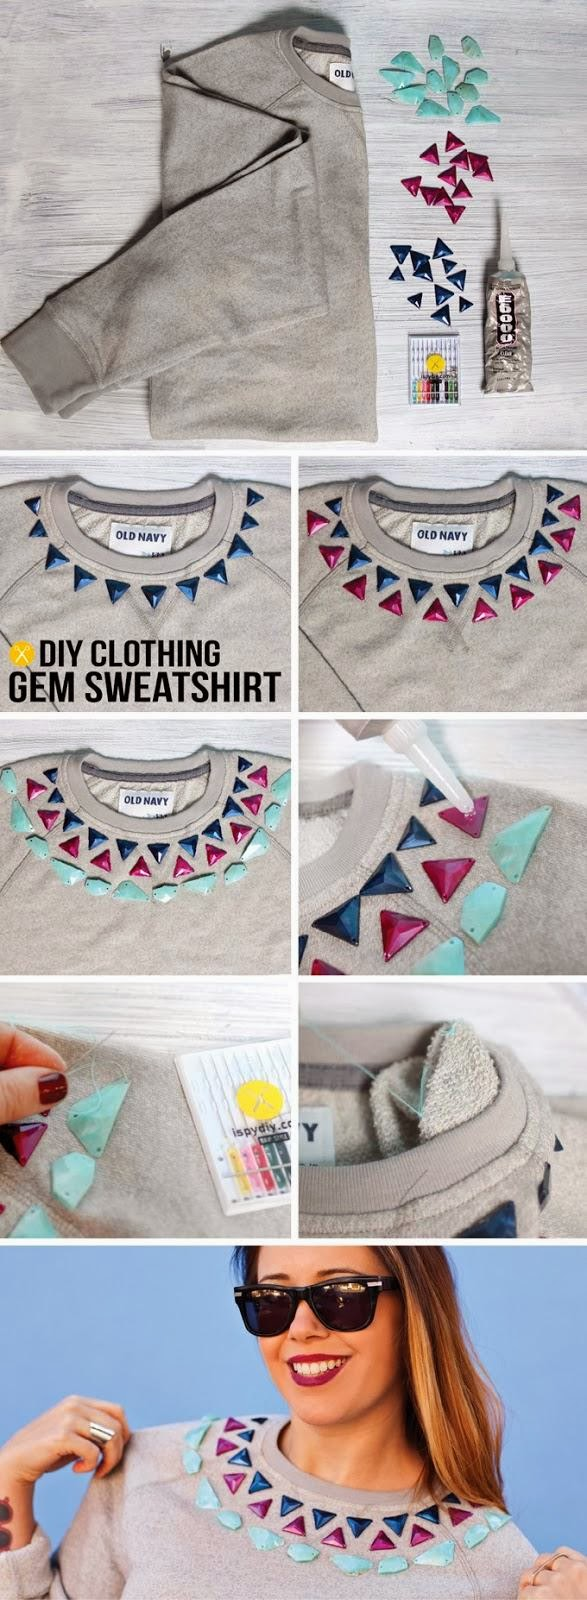 How to turn your sweater into a sweatshirt